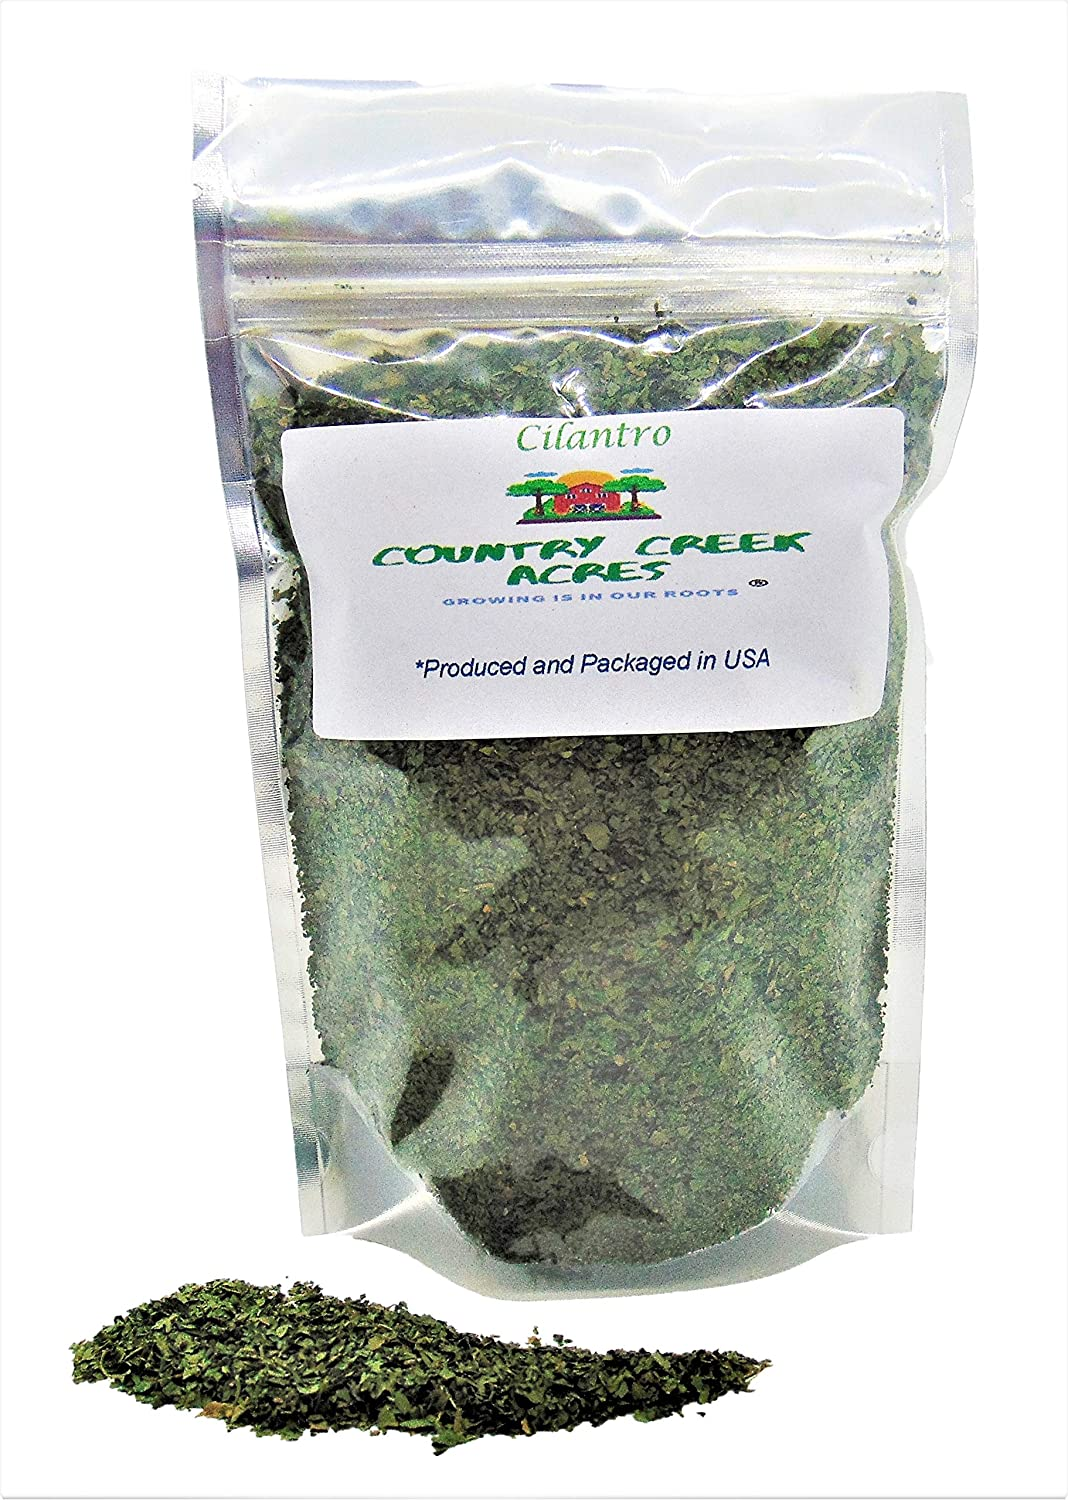 Cilantro Dried and Chopped Spice Non- oz Packa Online limited product Elegant 5 GMO